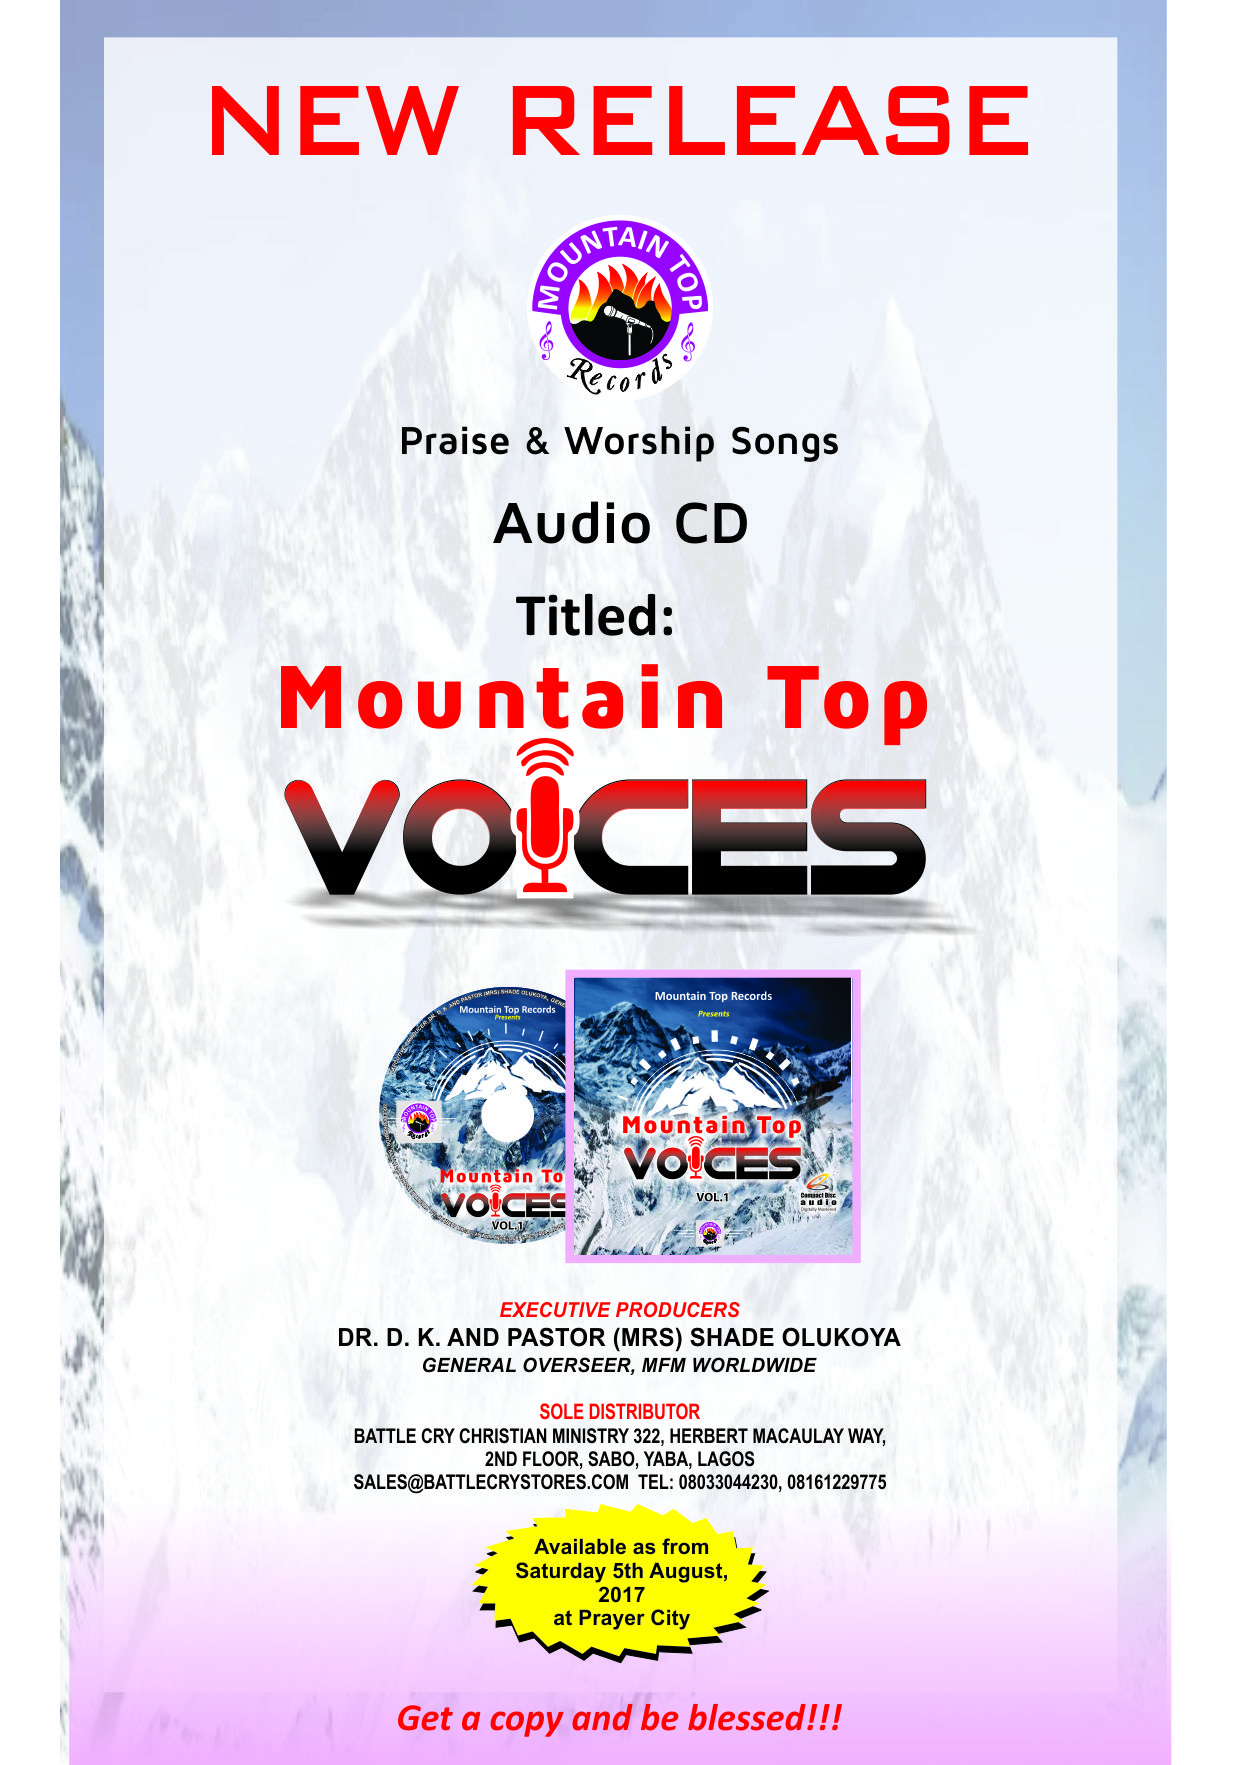 Mountain-Top-Voices-A4-Flyer.jpg